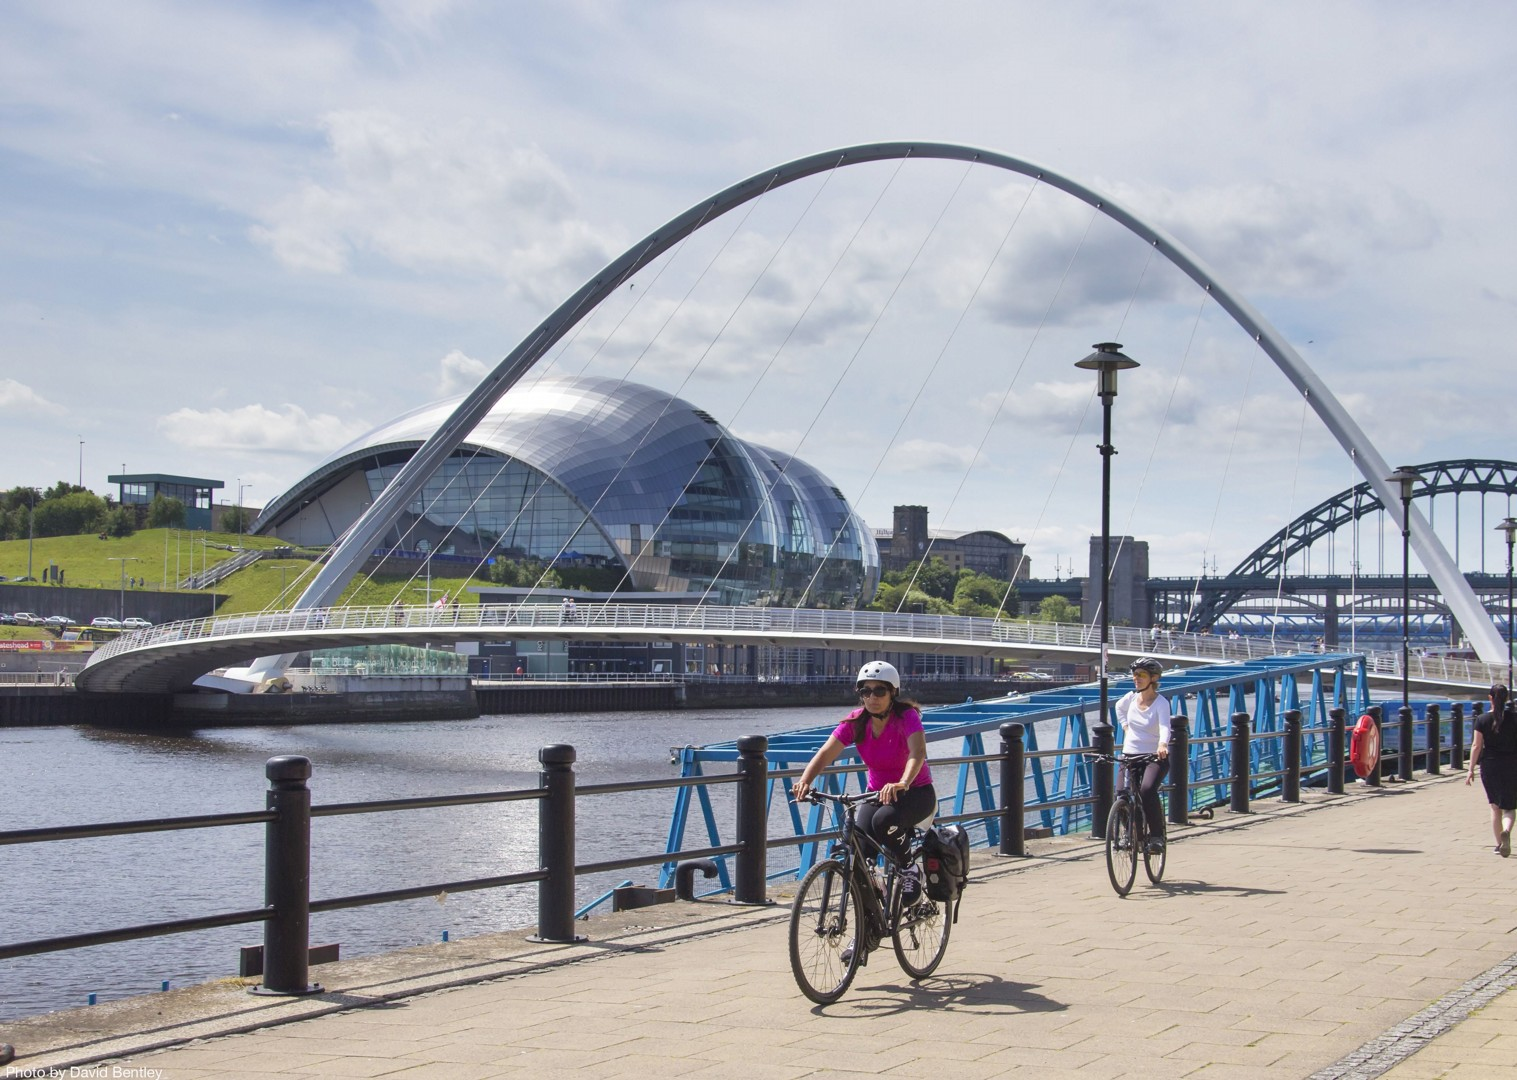 Self-Guided-Leisure-Cycling-Holiday-Hadrians-Cycleway-UK-Newcastle.jpg - UK - Hadrian's Cycleway - 6 Days Cycling - Self-Guided Leisure Cycling Holiday - Leisure Cycling